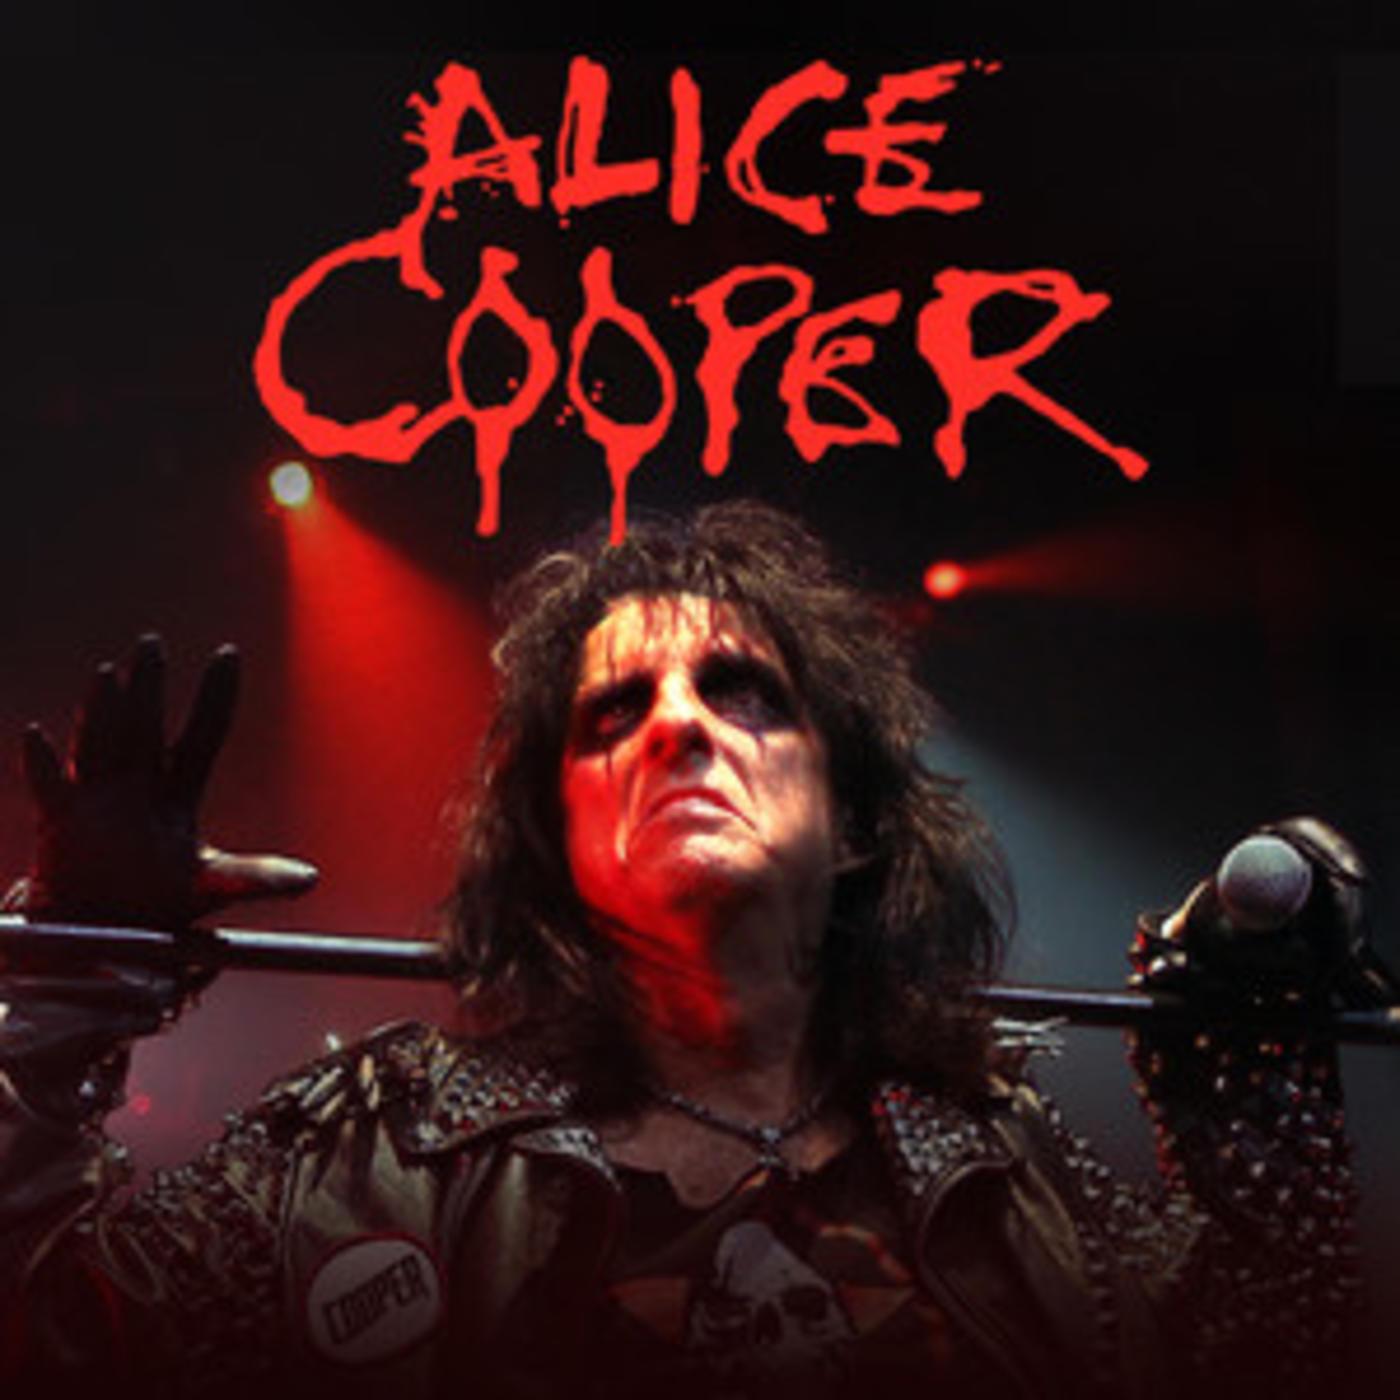 Official Alice Cooper Playlist - Poison, School's Out, No More Mr. Nice Guy, I'm Eighteen, Feed My Frankenstein, Hey Stoopid, Welcome to my Nightmare